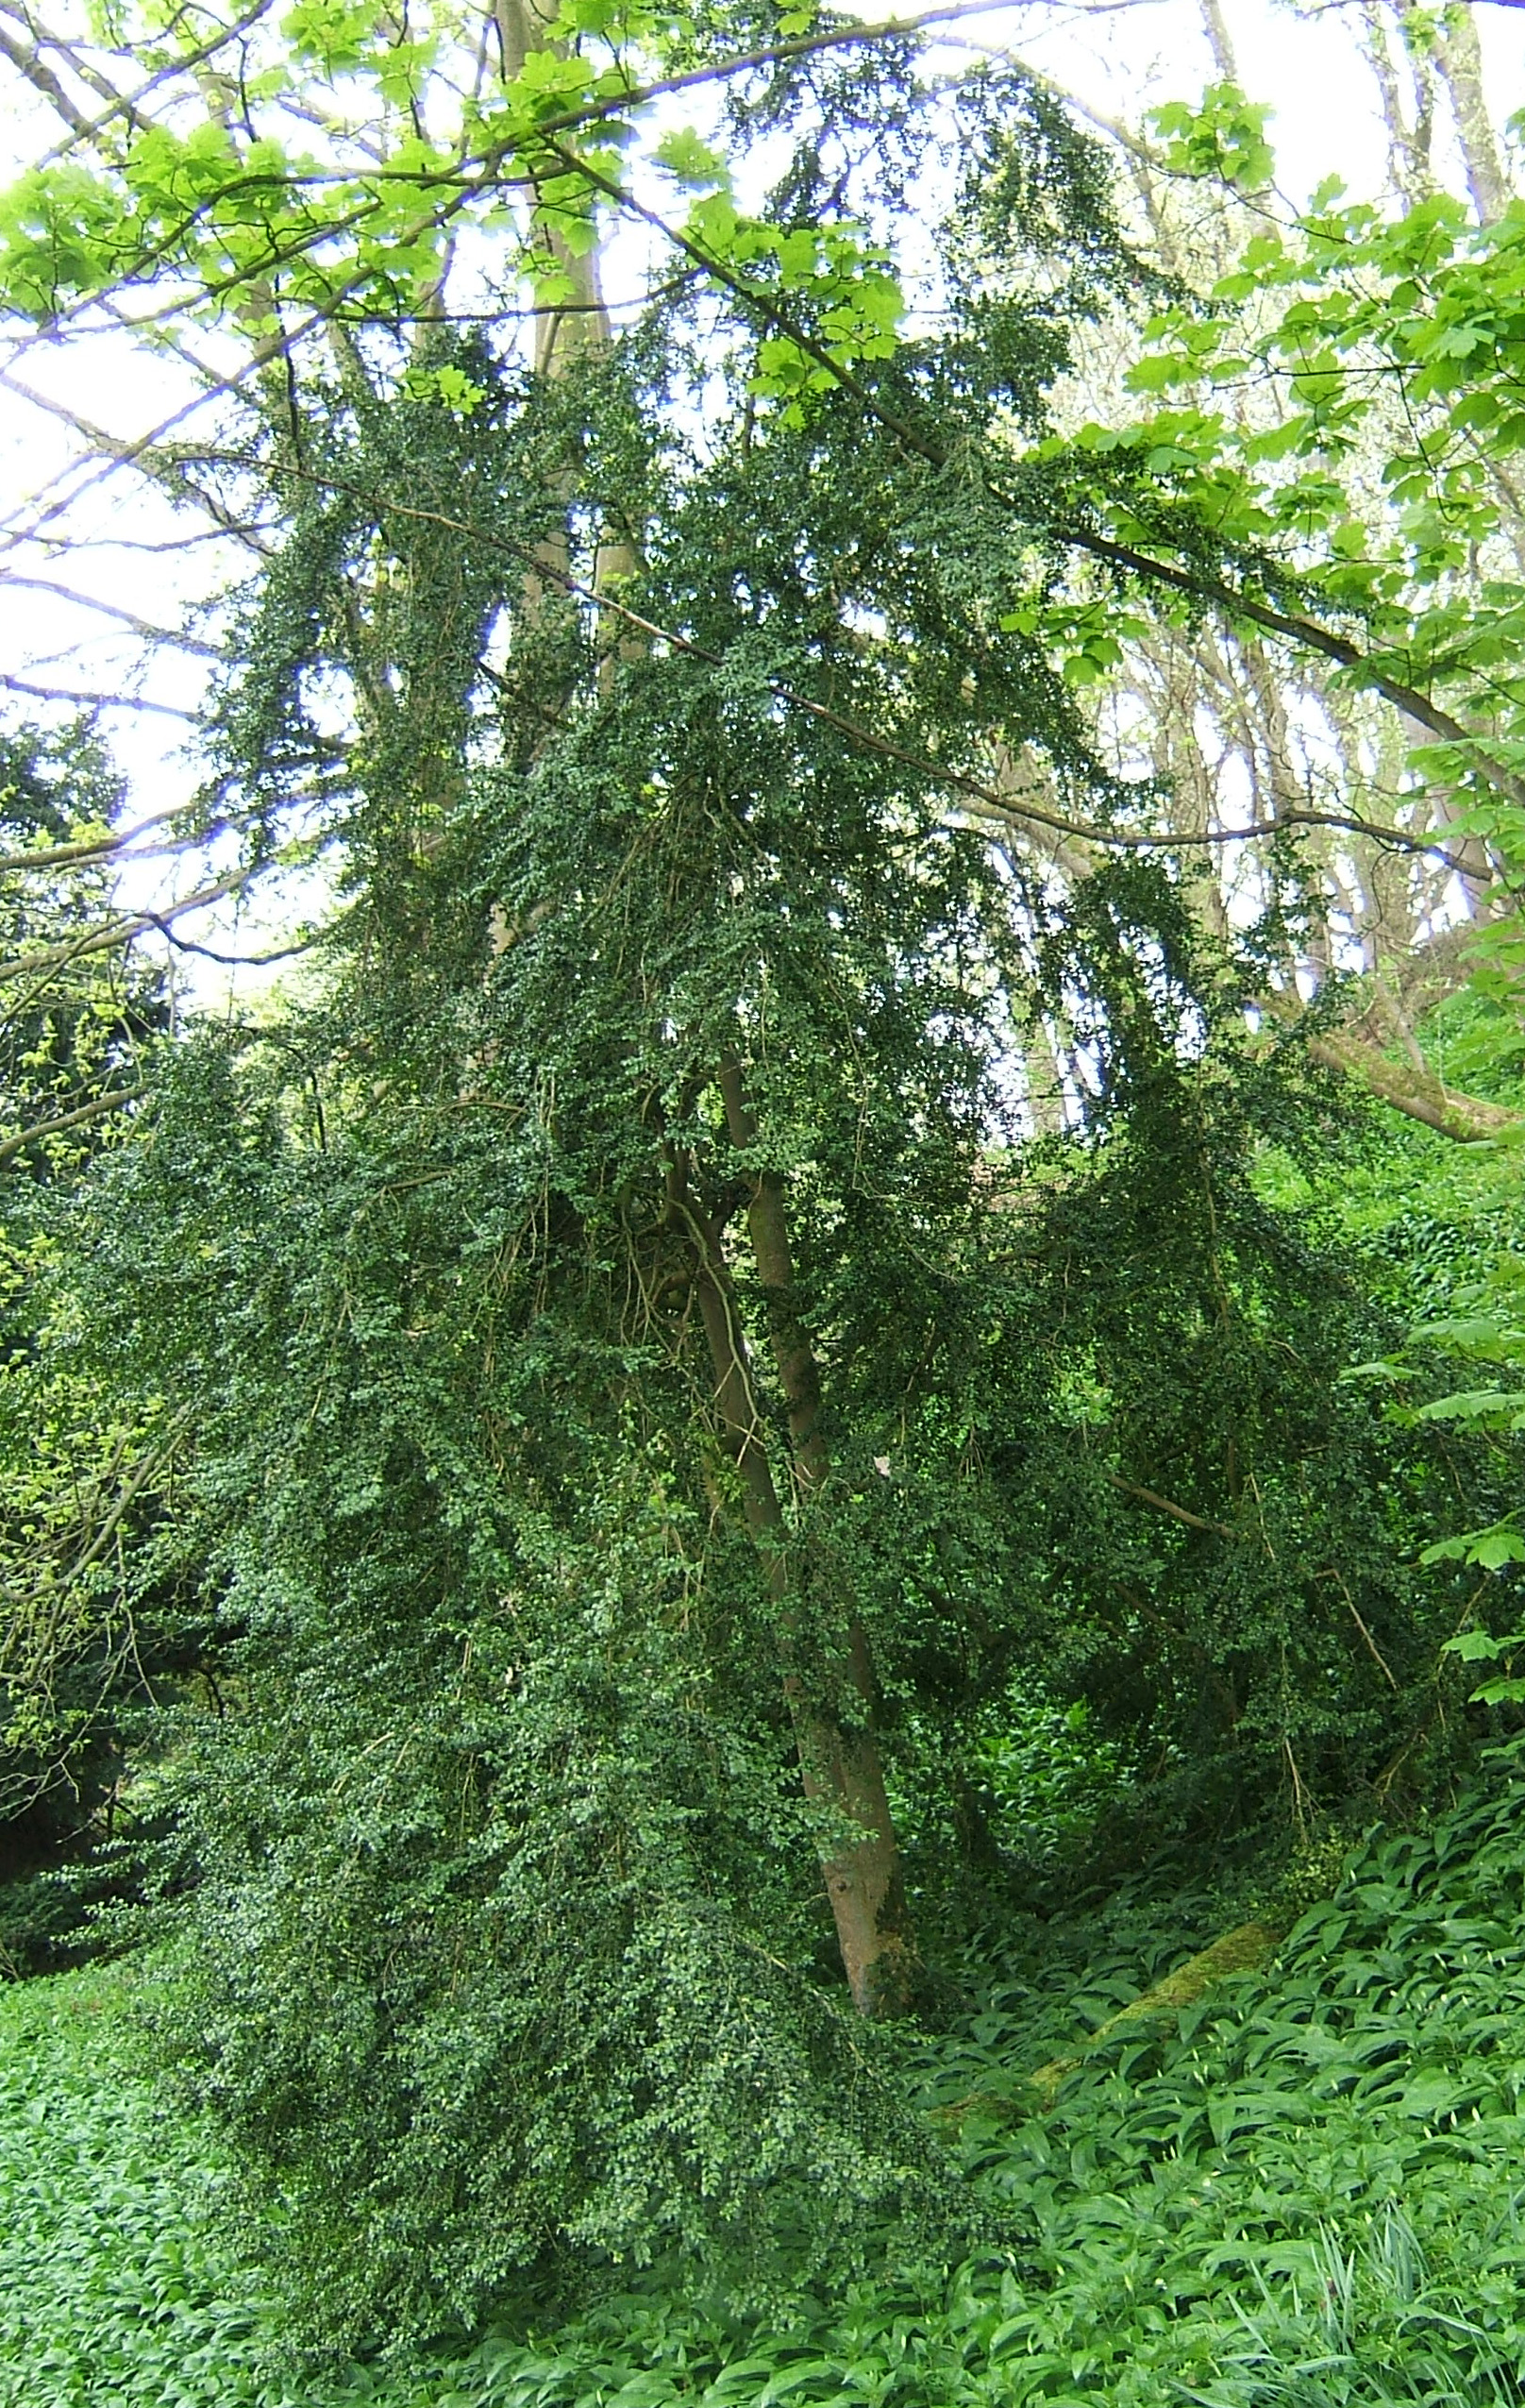 52105a09b Buxus sempervirens - Wikipedia